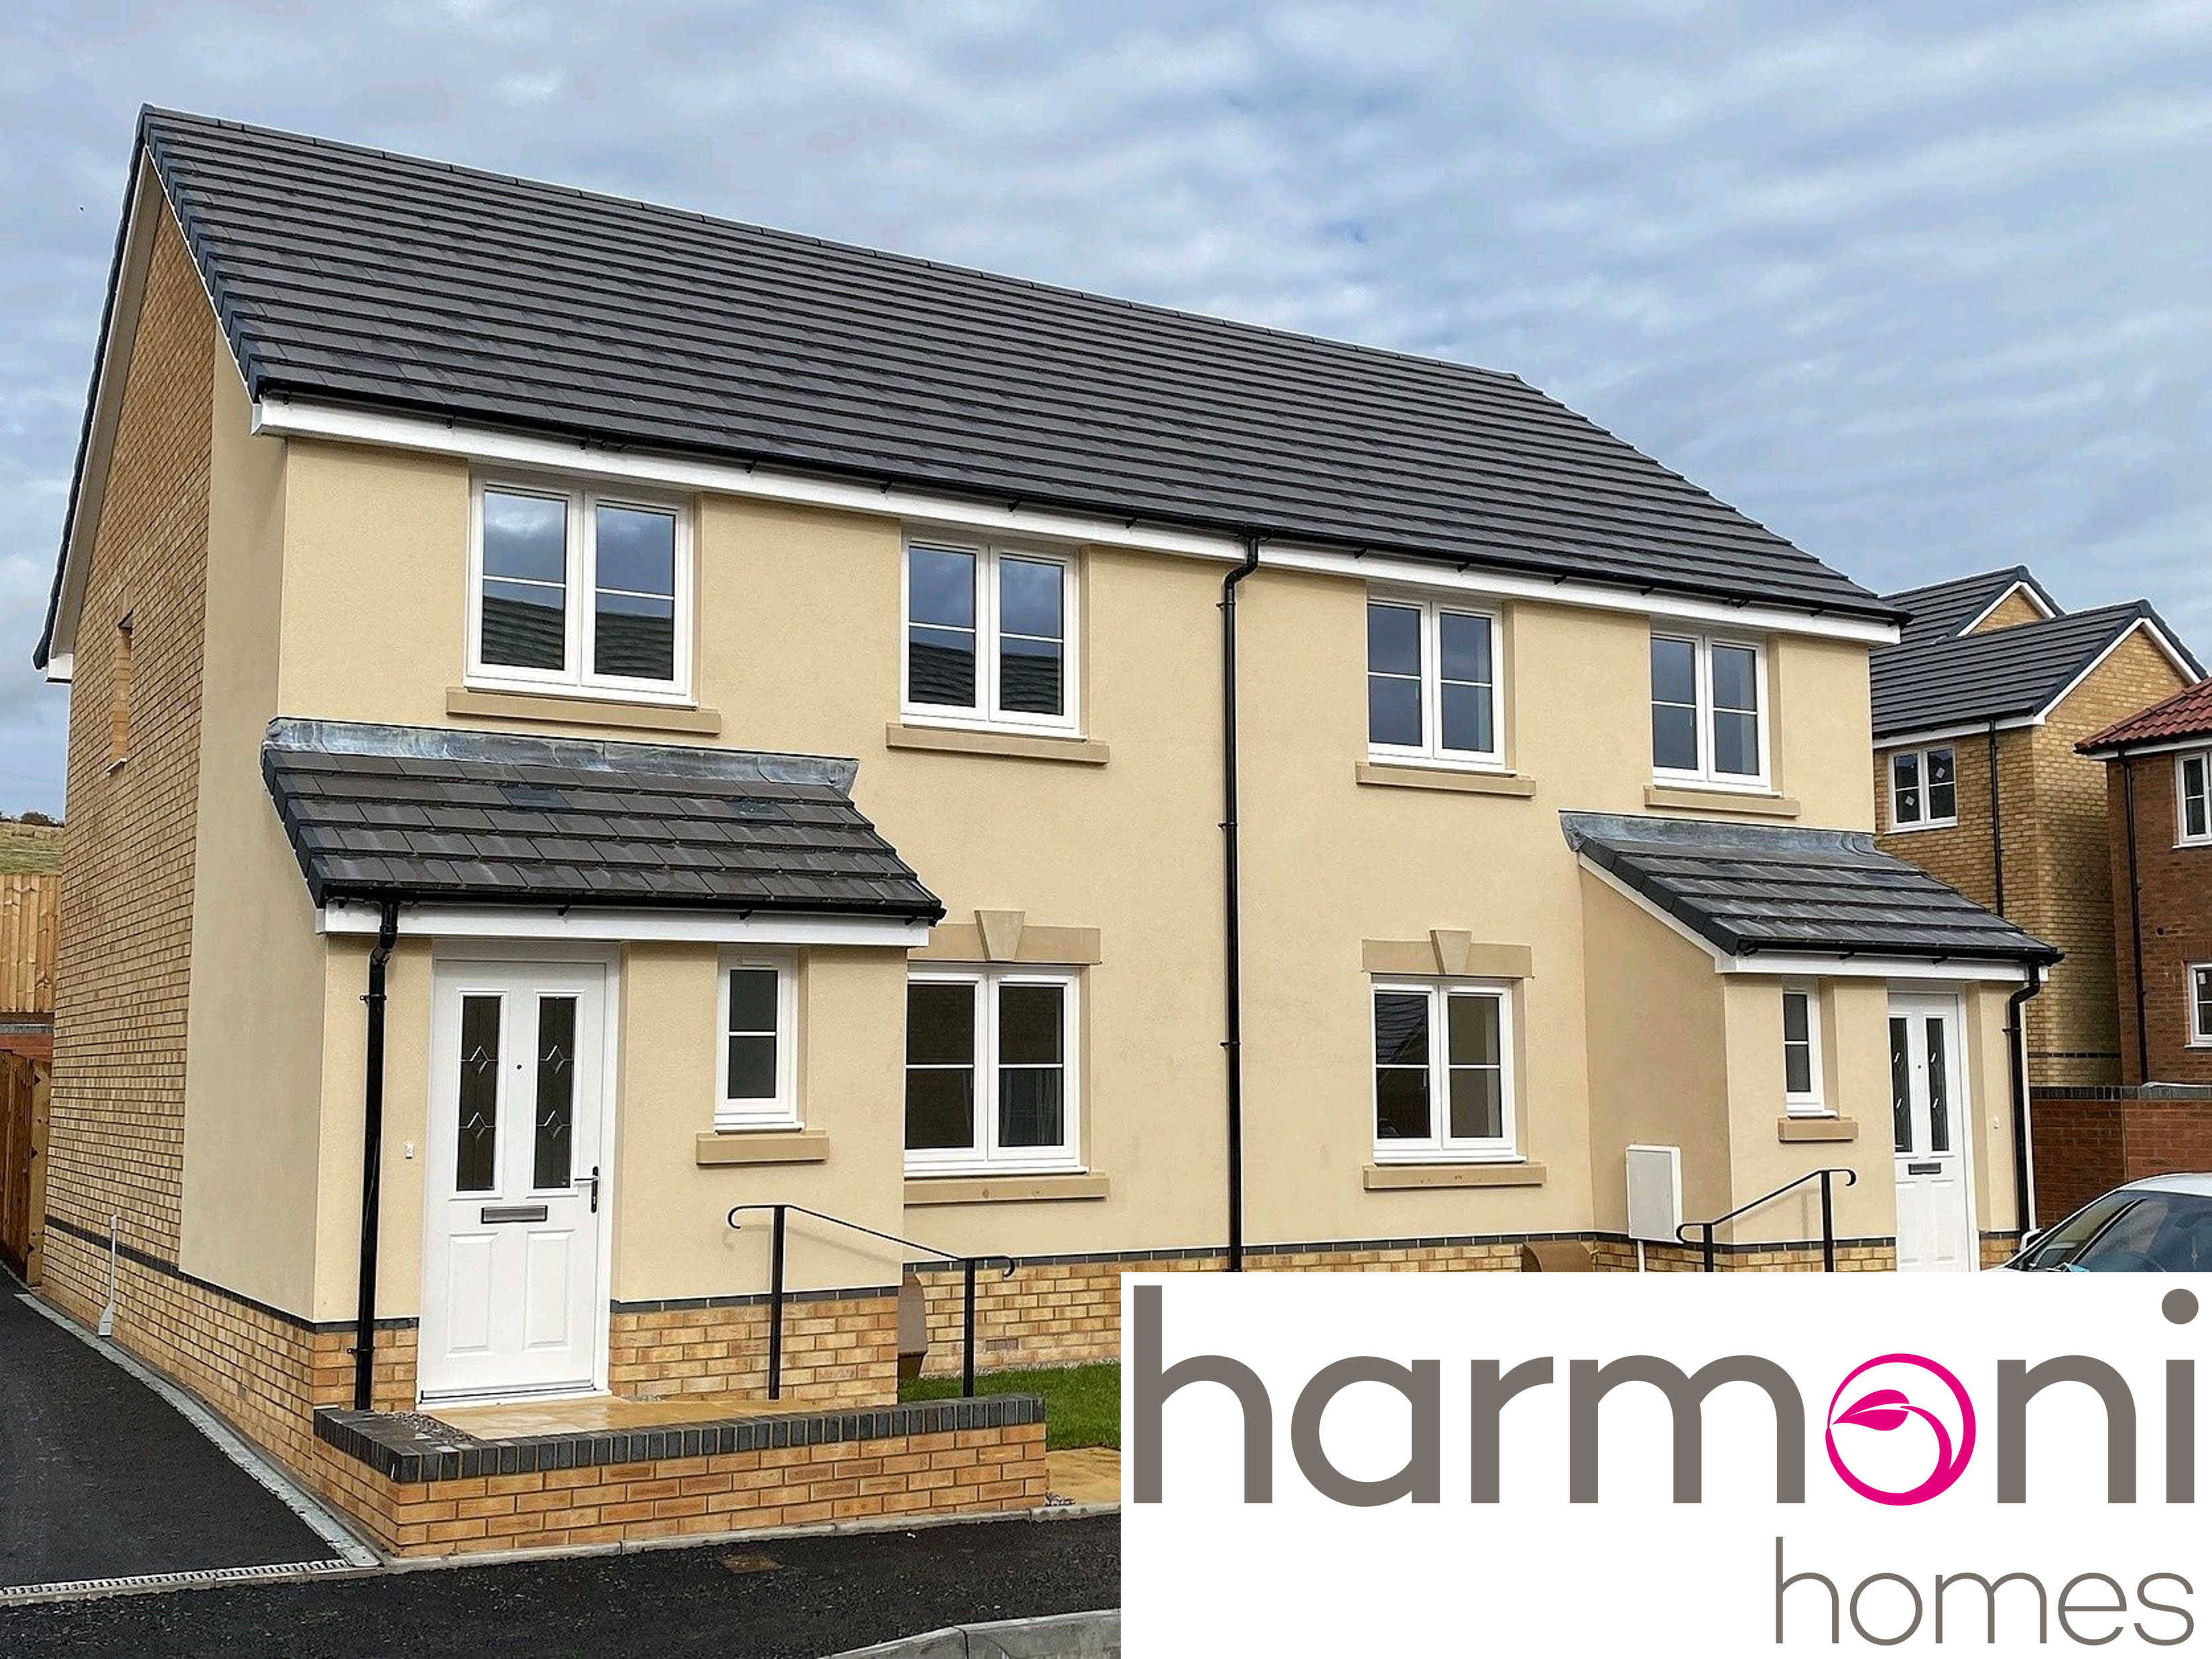 Homes in Bedwas with harmoni homes logo